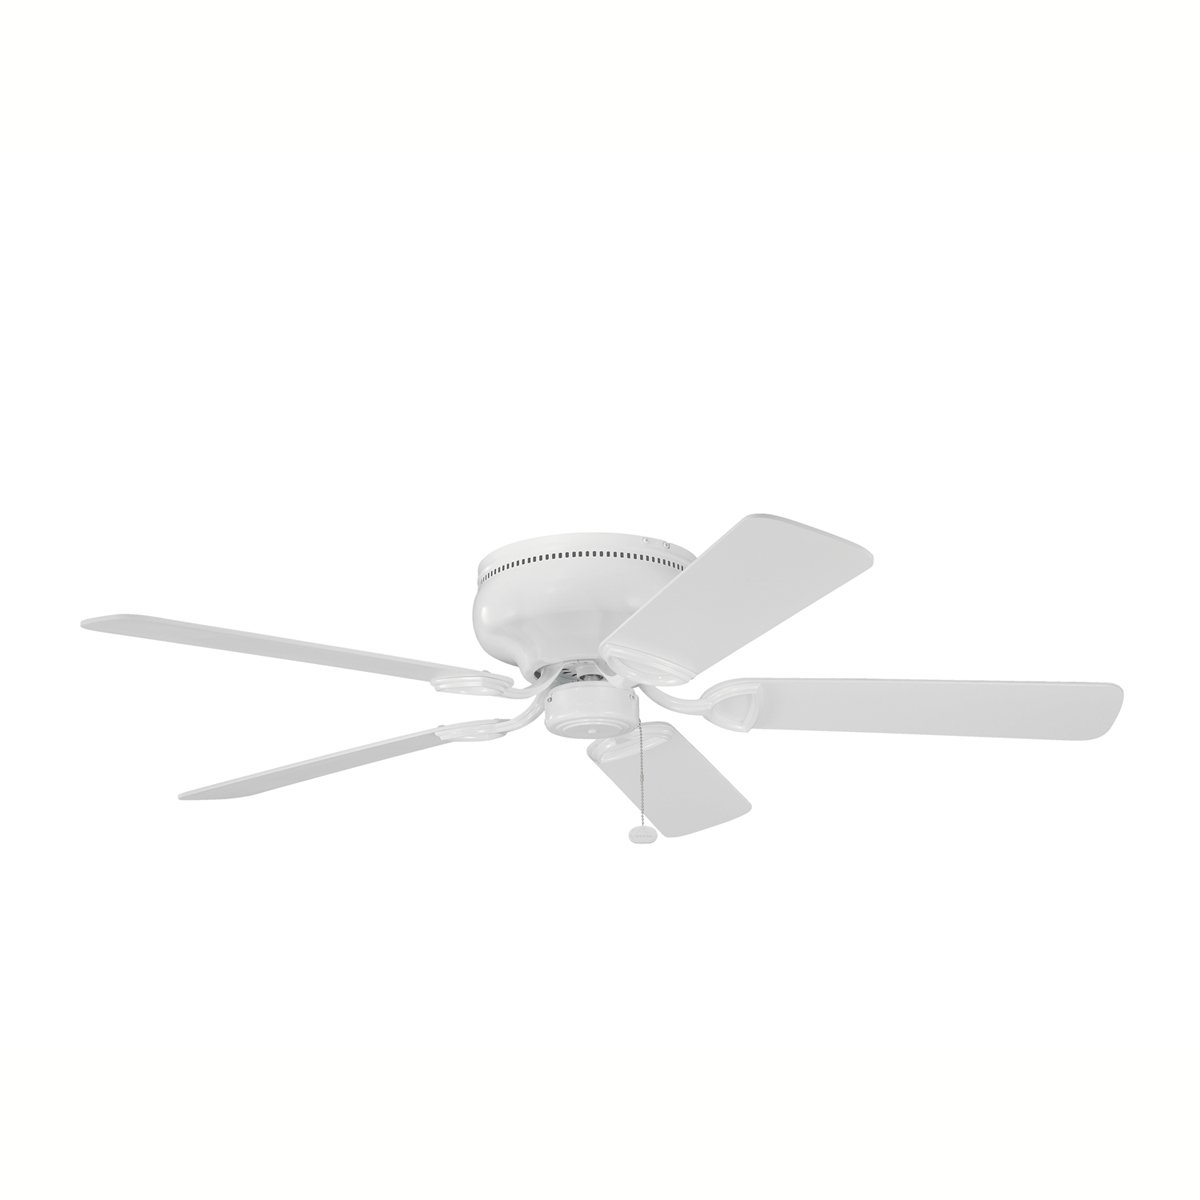 Kichler 339022wh 52 inch stratmoor fan white amazon aloadofball Choice Image